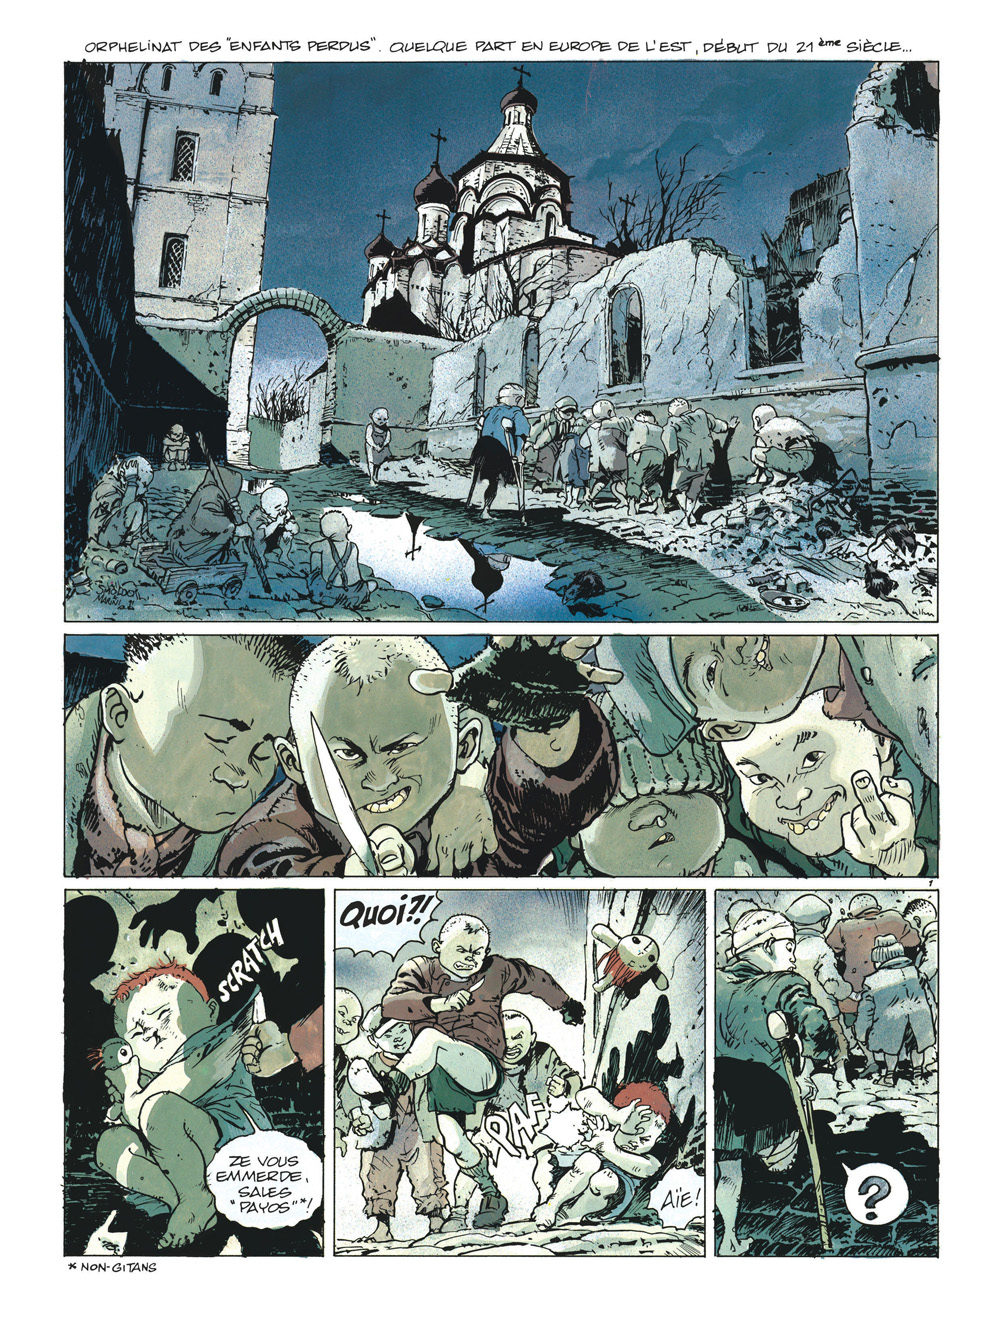 gipsy intégrale planche 1